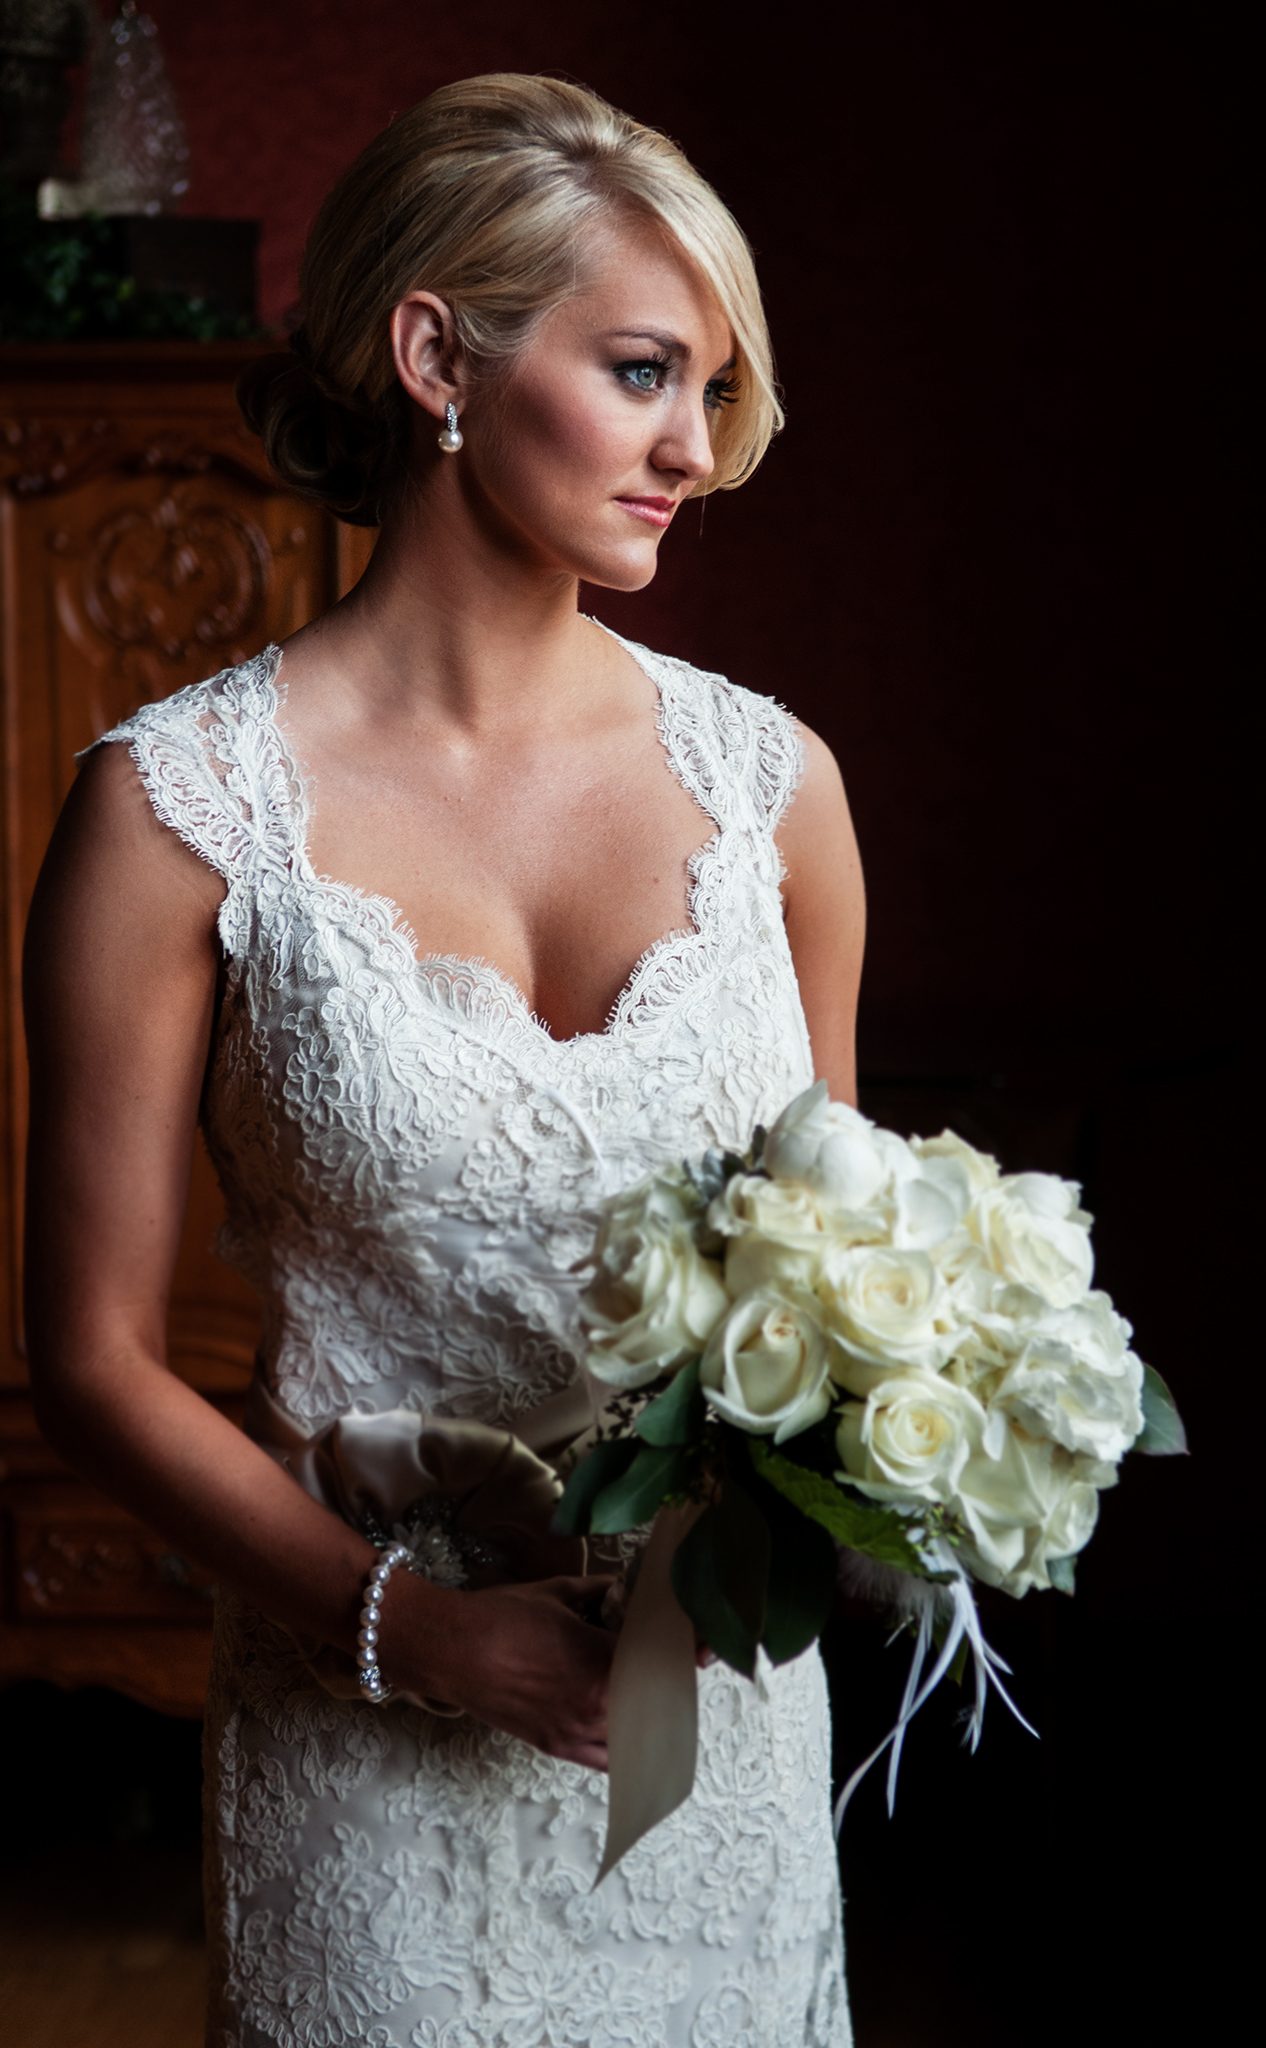 northwestarkansasweddingphotographer01.JPG